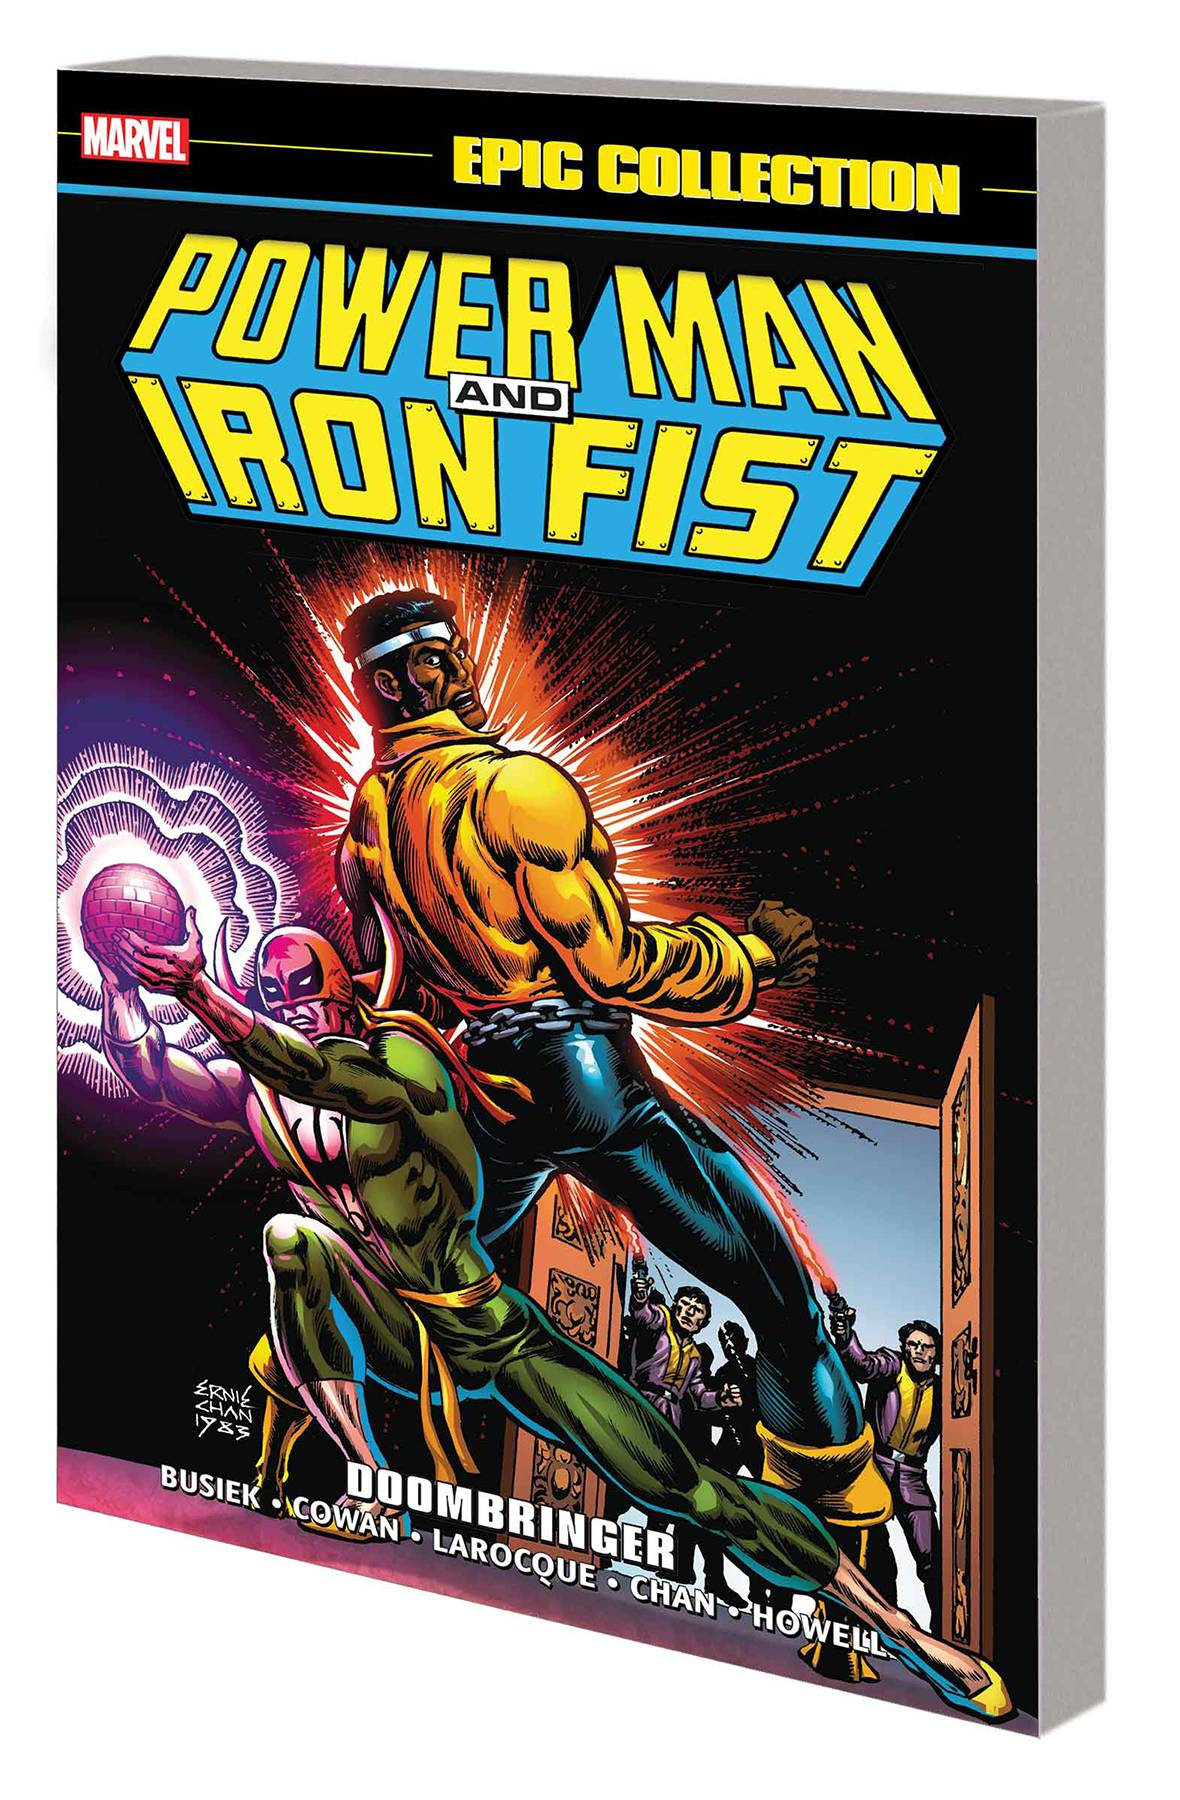 POWER MAN AND IRON FIST EPIC COLLECTION TP DOOMBRINGER.jpg